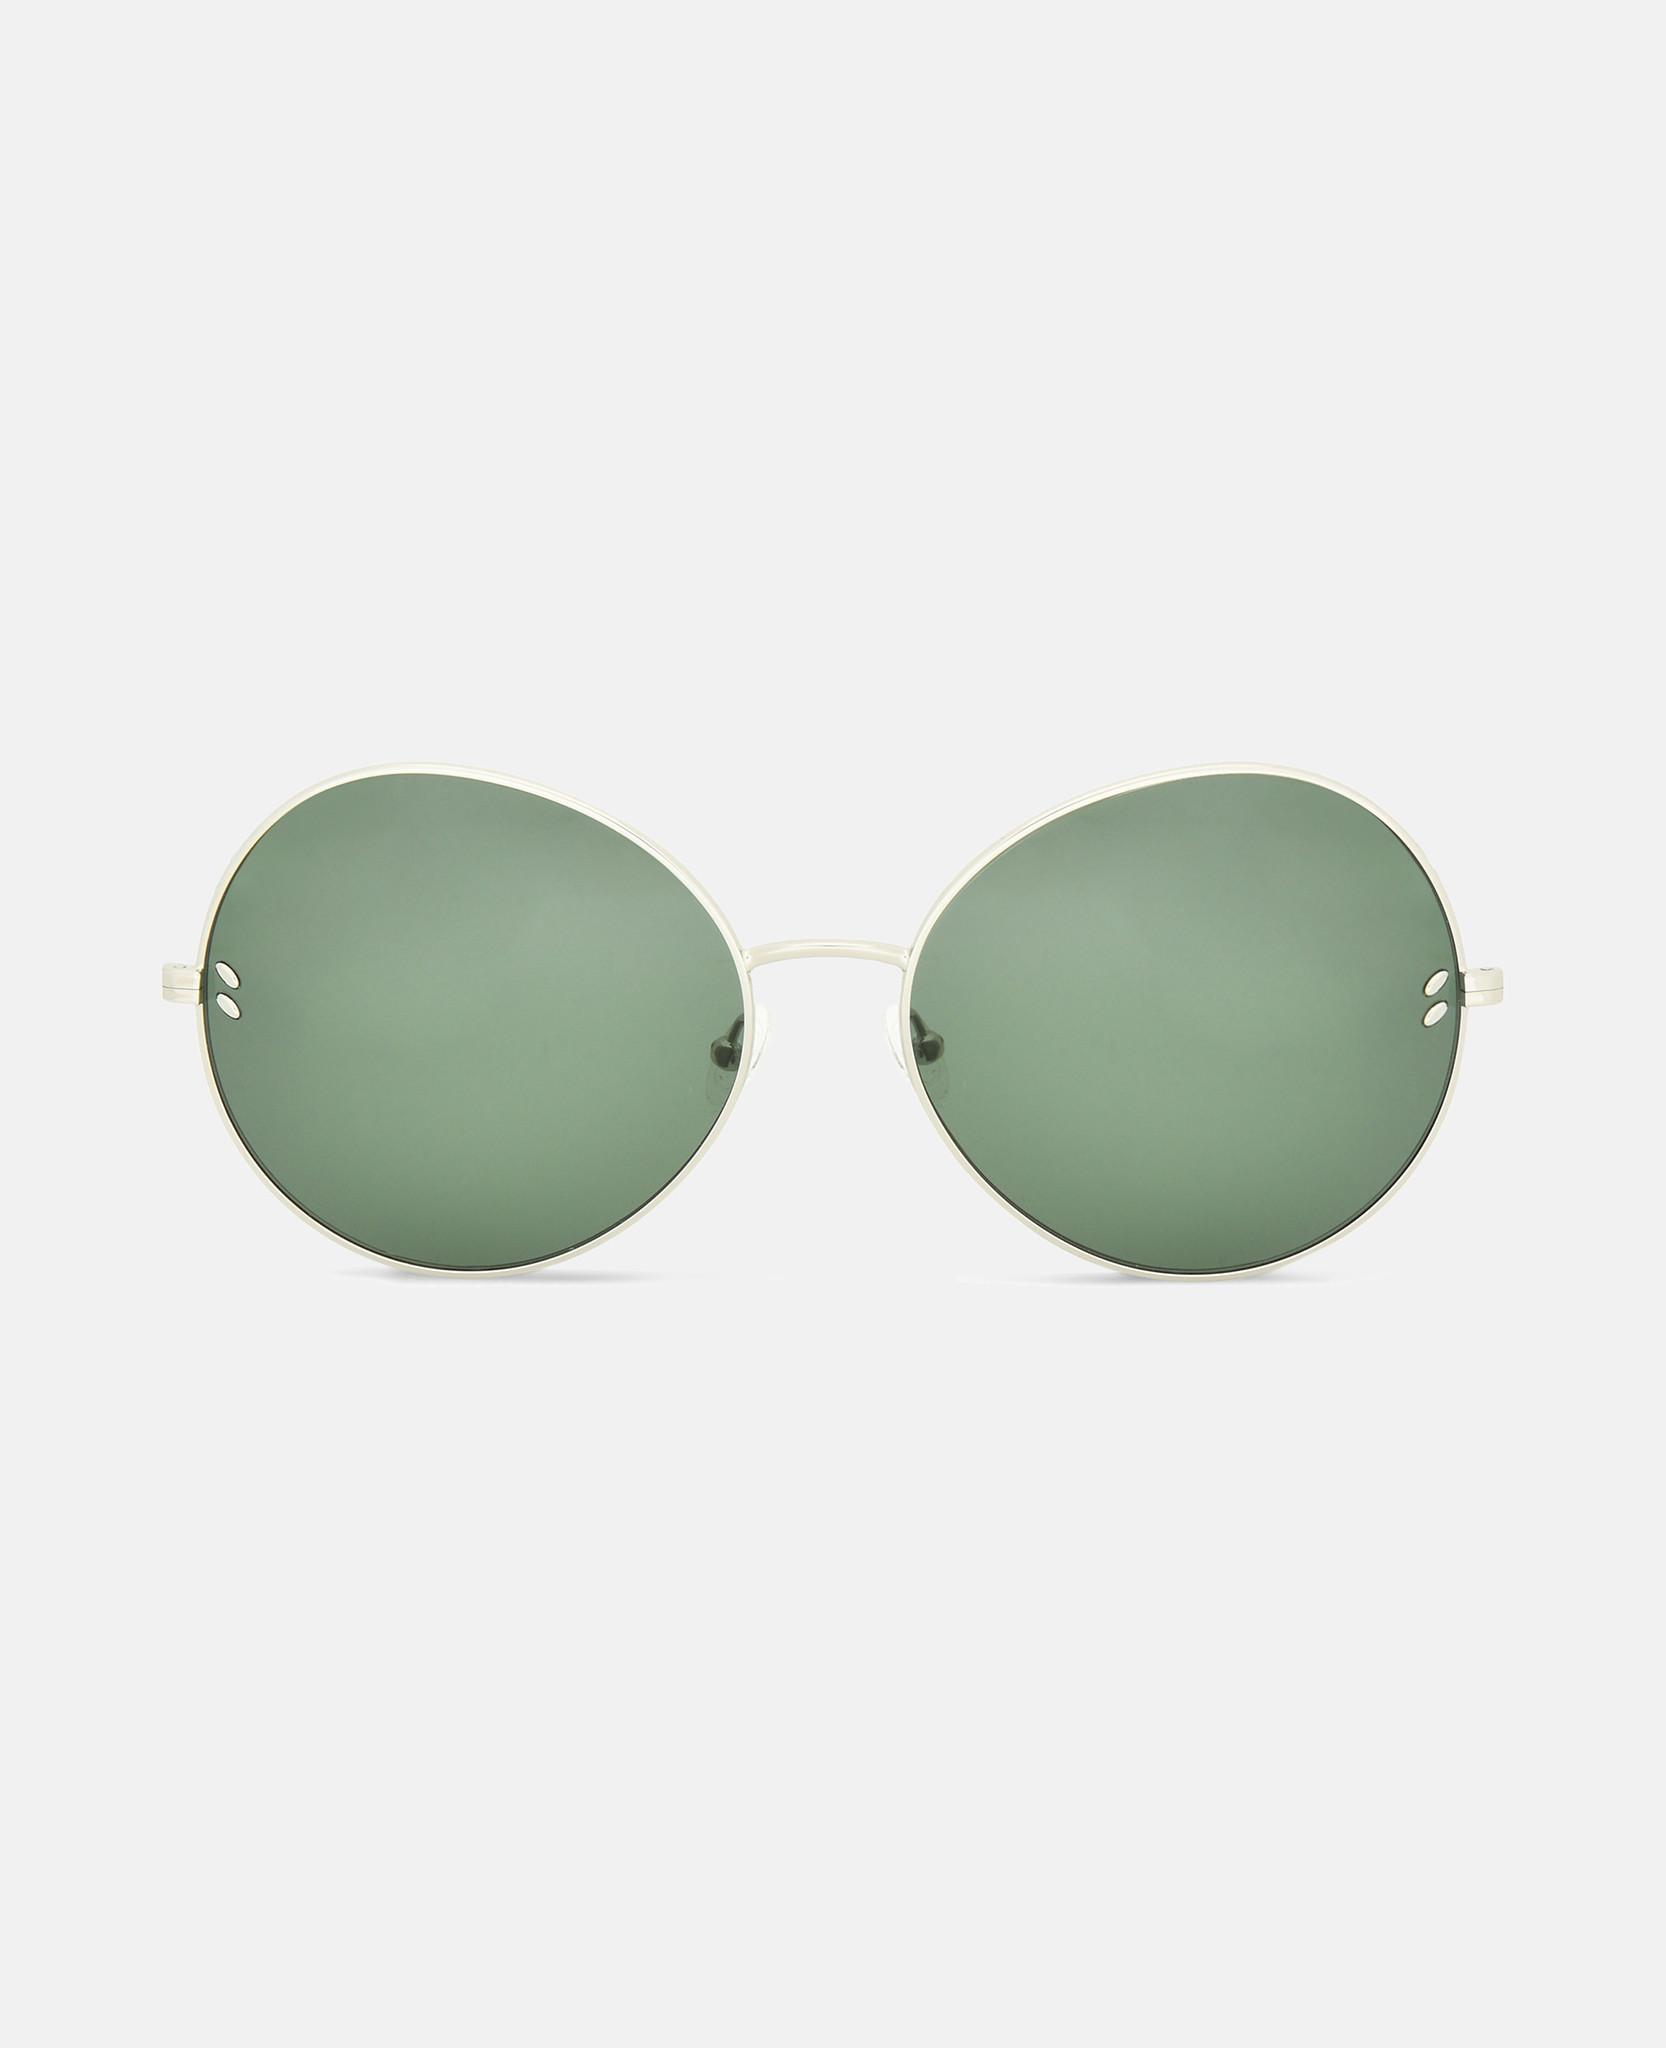 7a561aa75d Lyst - Stella McCartney Metal Green Round Sunglasses in Gray